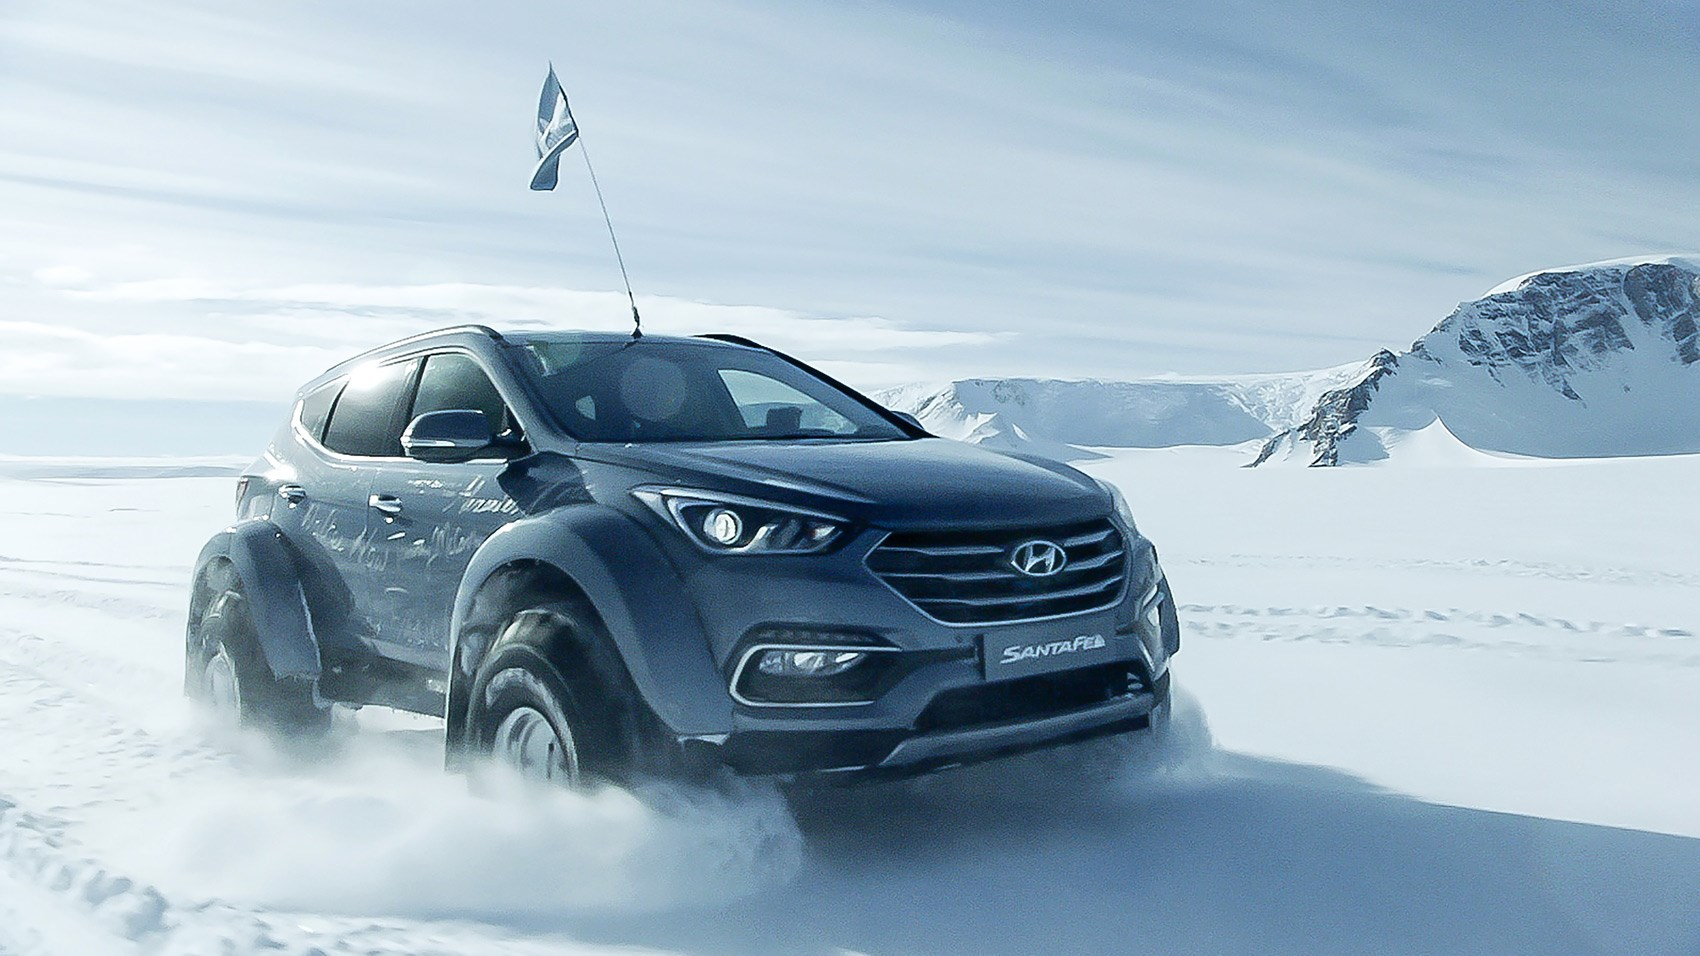 Hyundai Santa Fe Shackleton Endurance front tracking